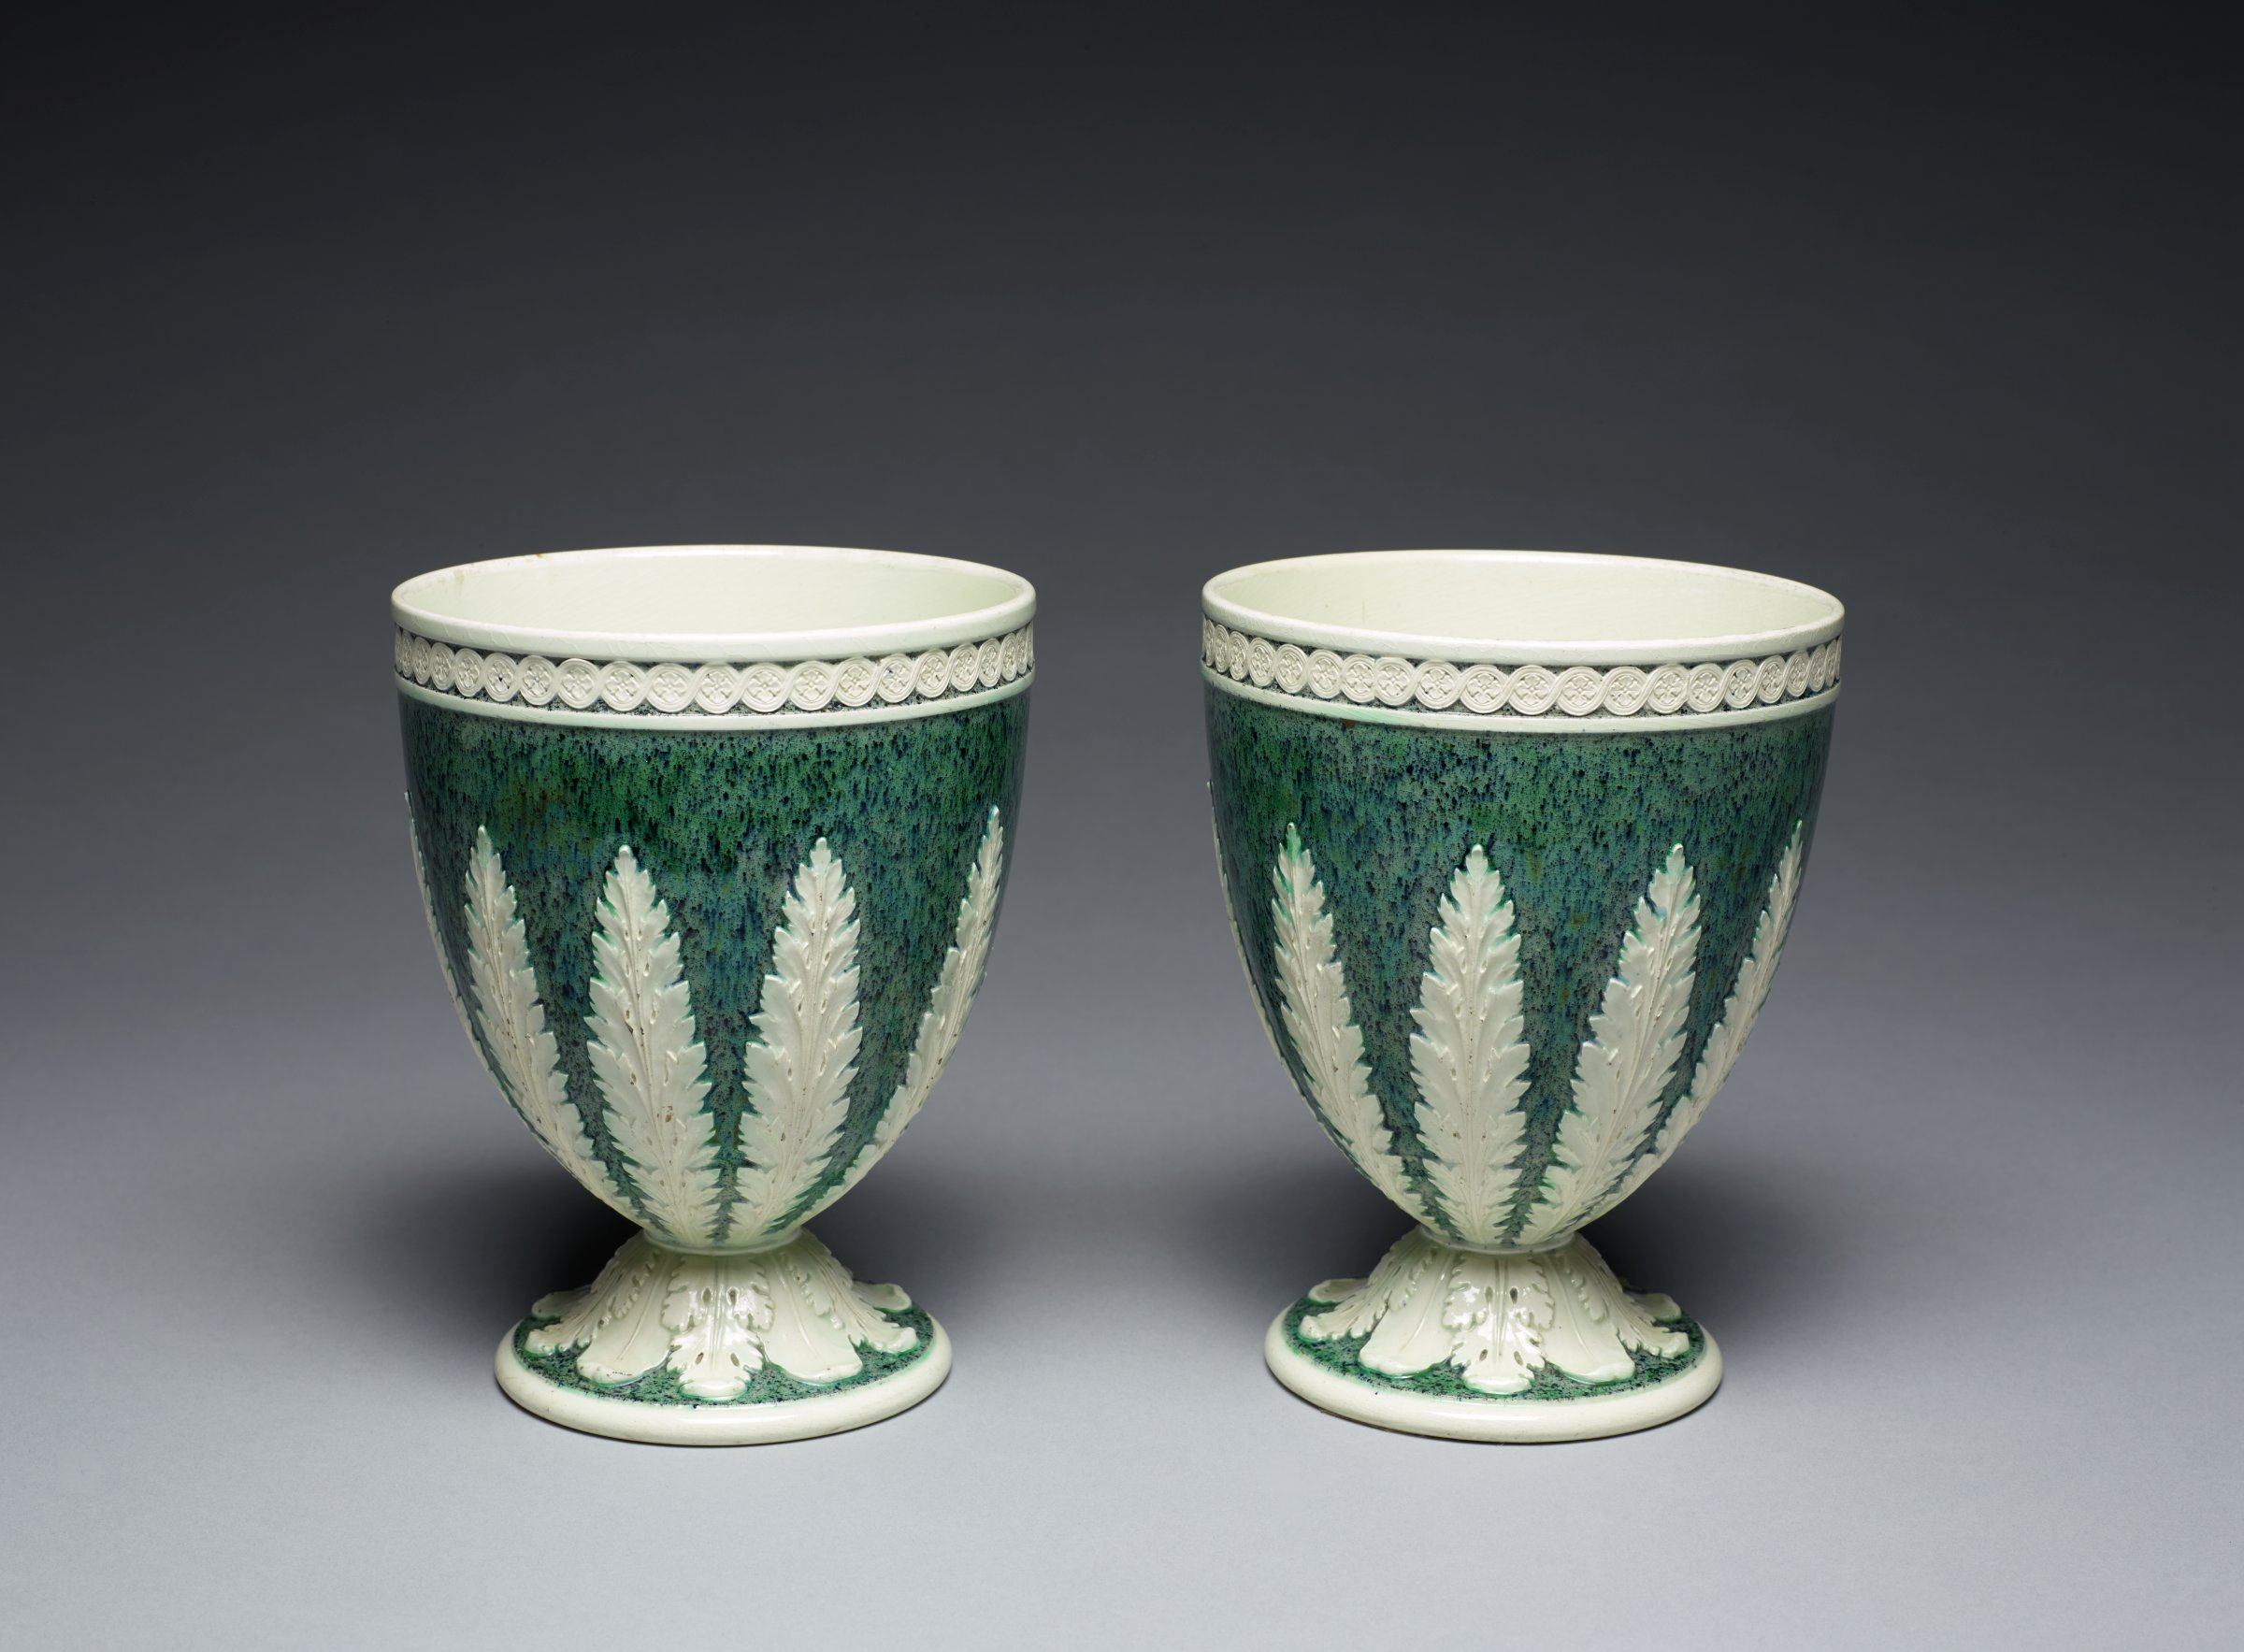 Pair of goblet-shaped vases of white stoneware, the exteriors covered with a green variegated glaze, the body of each with applied, white stiff leaf motifs and overlapping acanthus leaves around the foot, with a band of applied, white repeating medallion motifs below the lip, the interiors white.